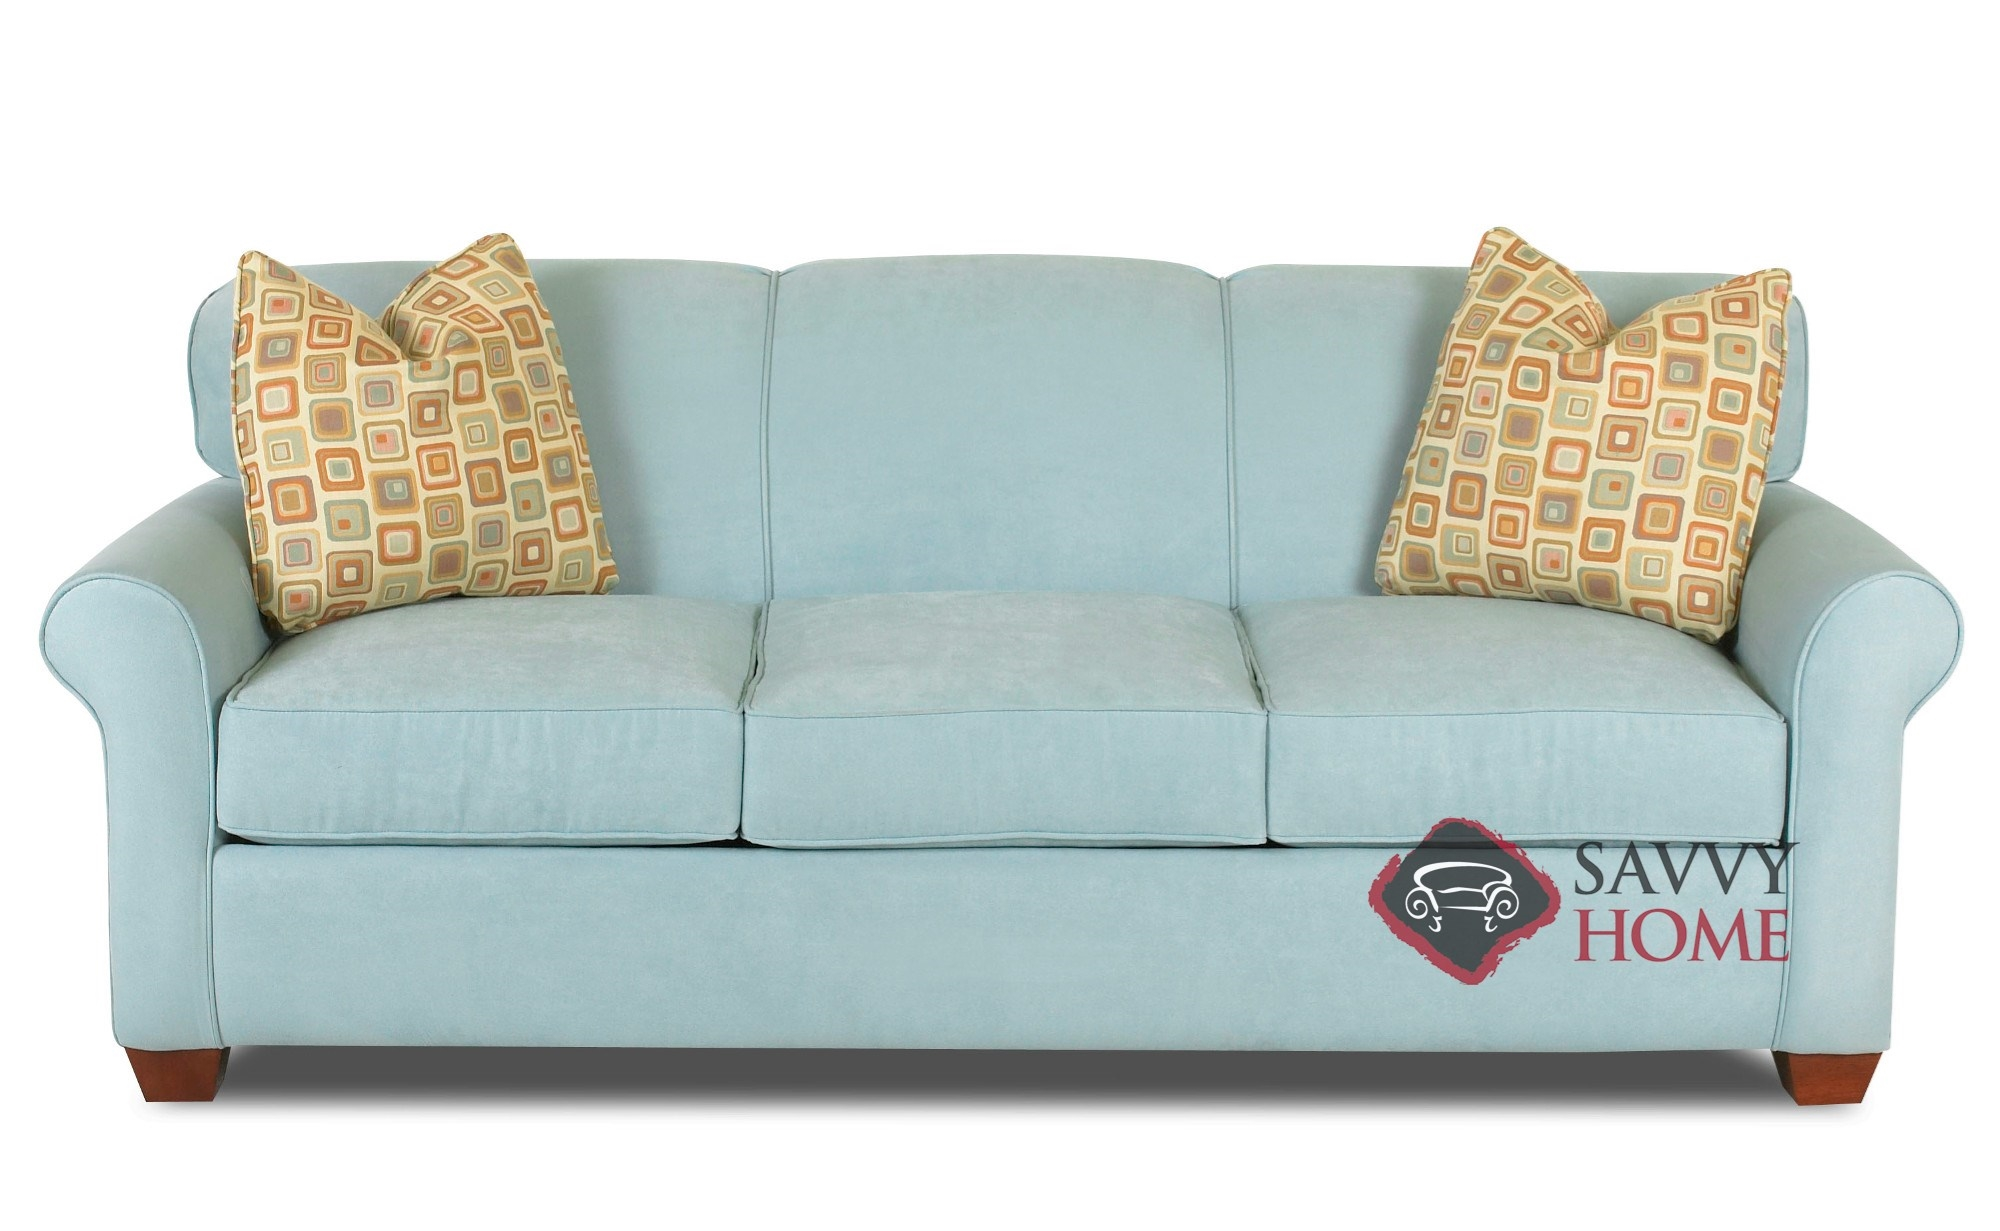 Calgary Fabric Sleeper Sofas Queen By